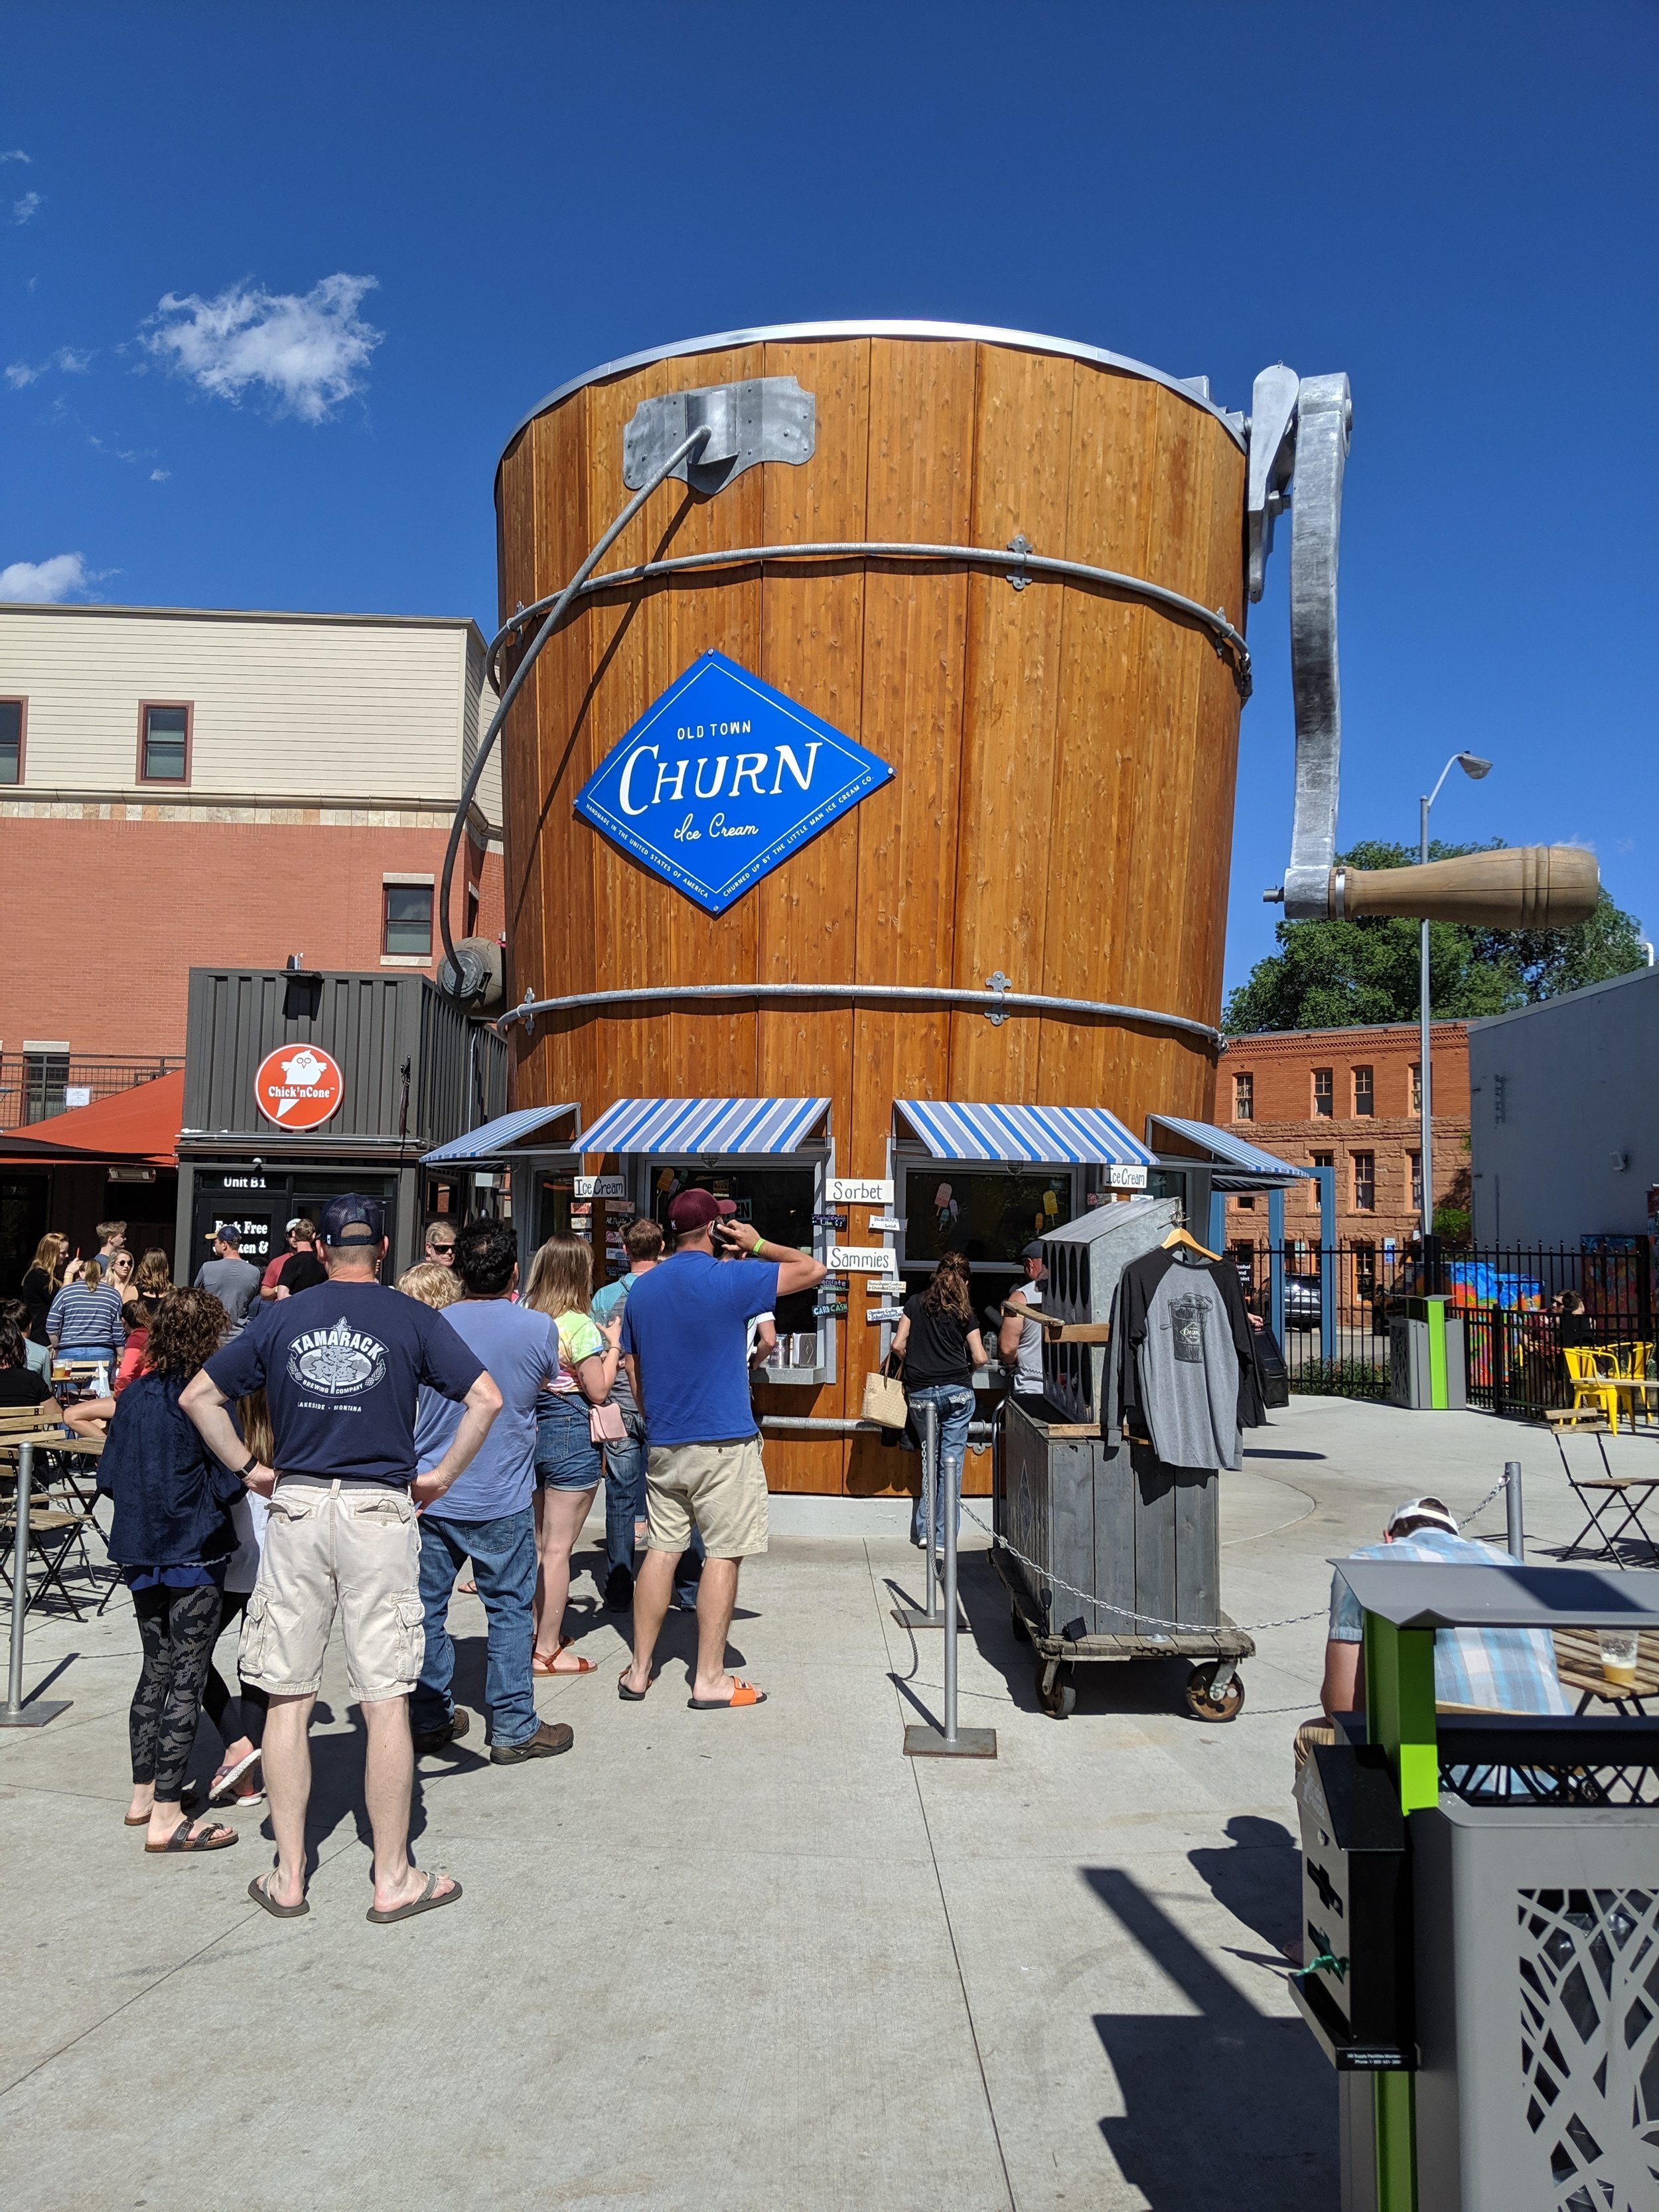 Churn in Old Town Fort Collins, Colorado.